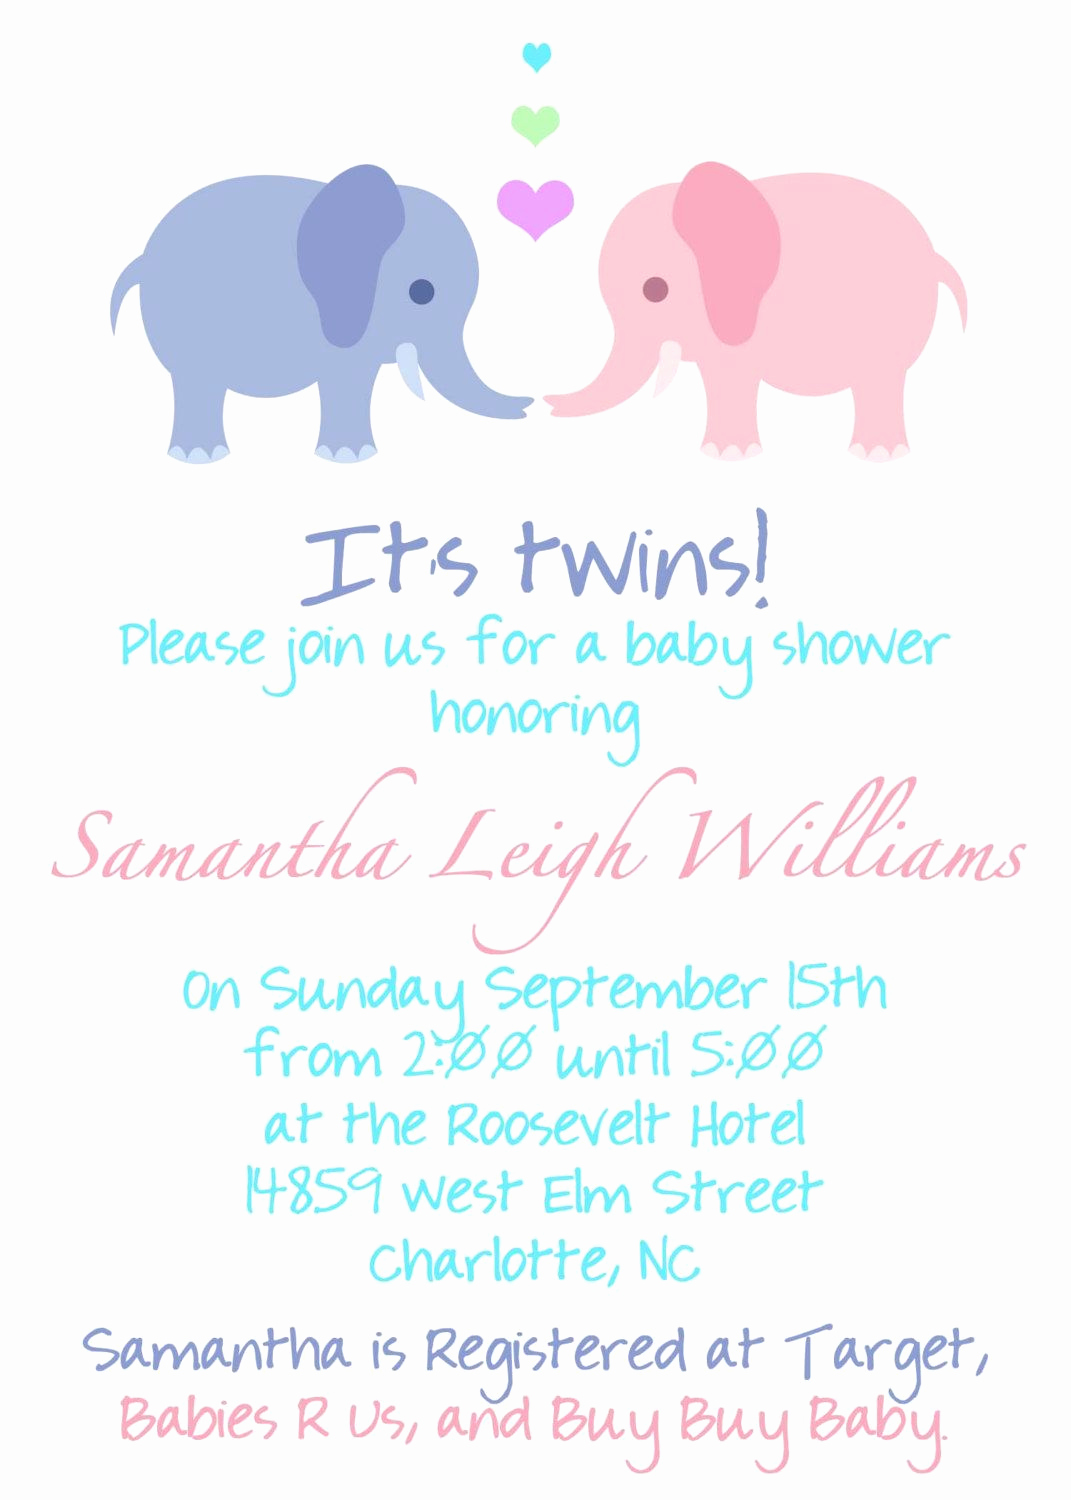 Work Baby Shower Invitation Wording Lovely Twin Pregnancy Announcement Wording